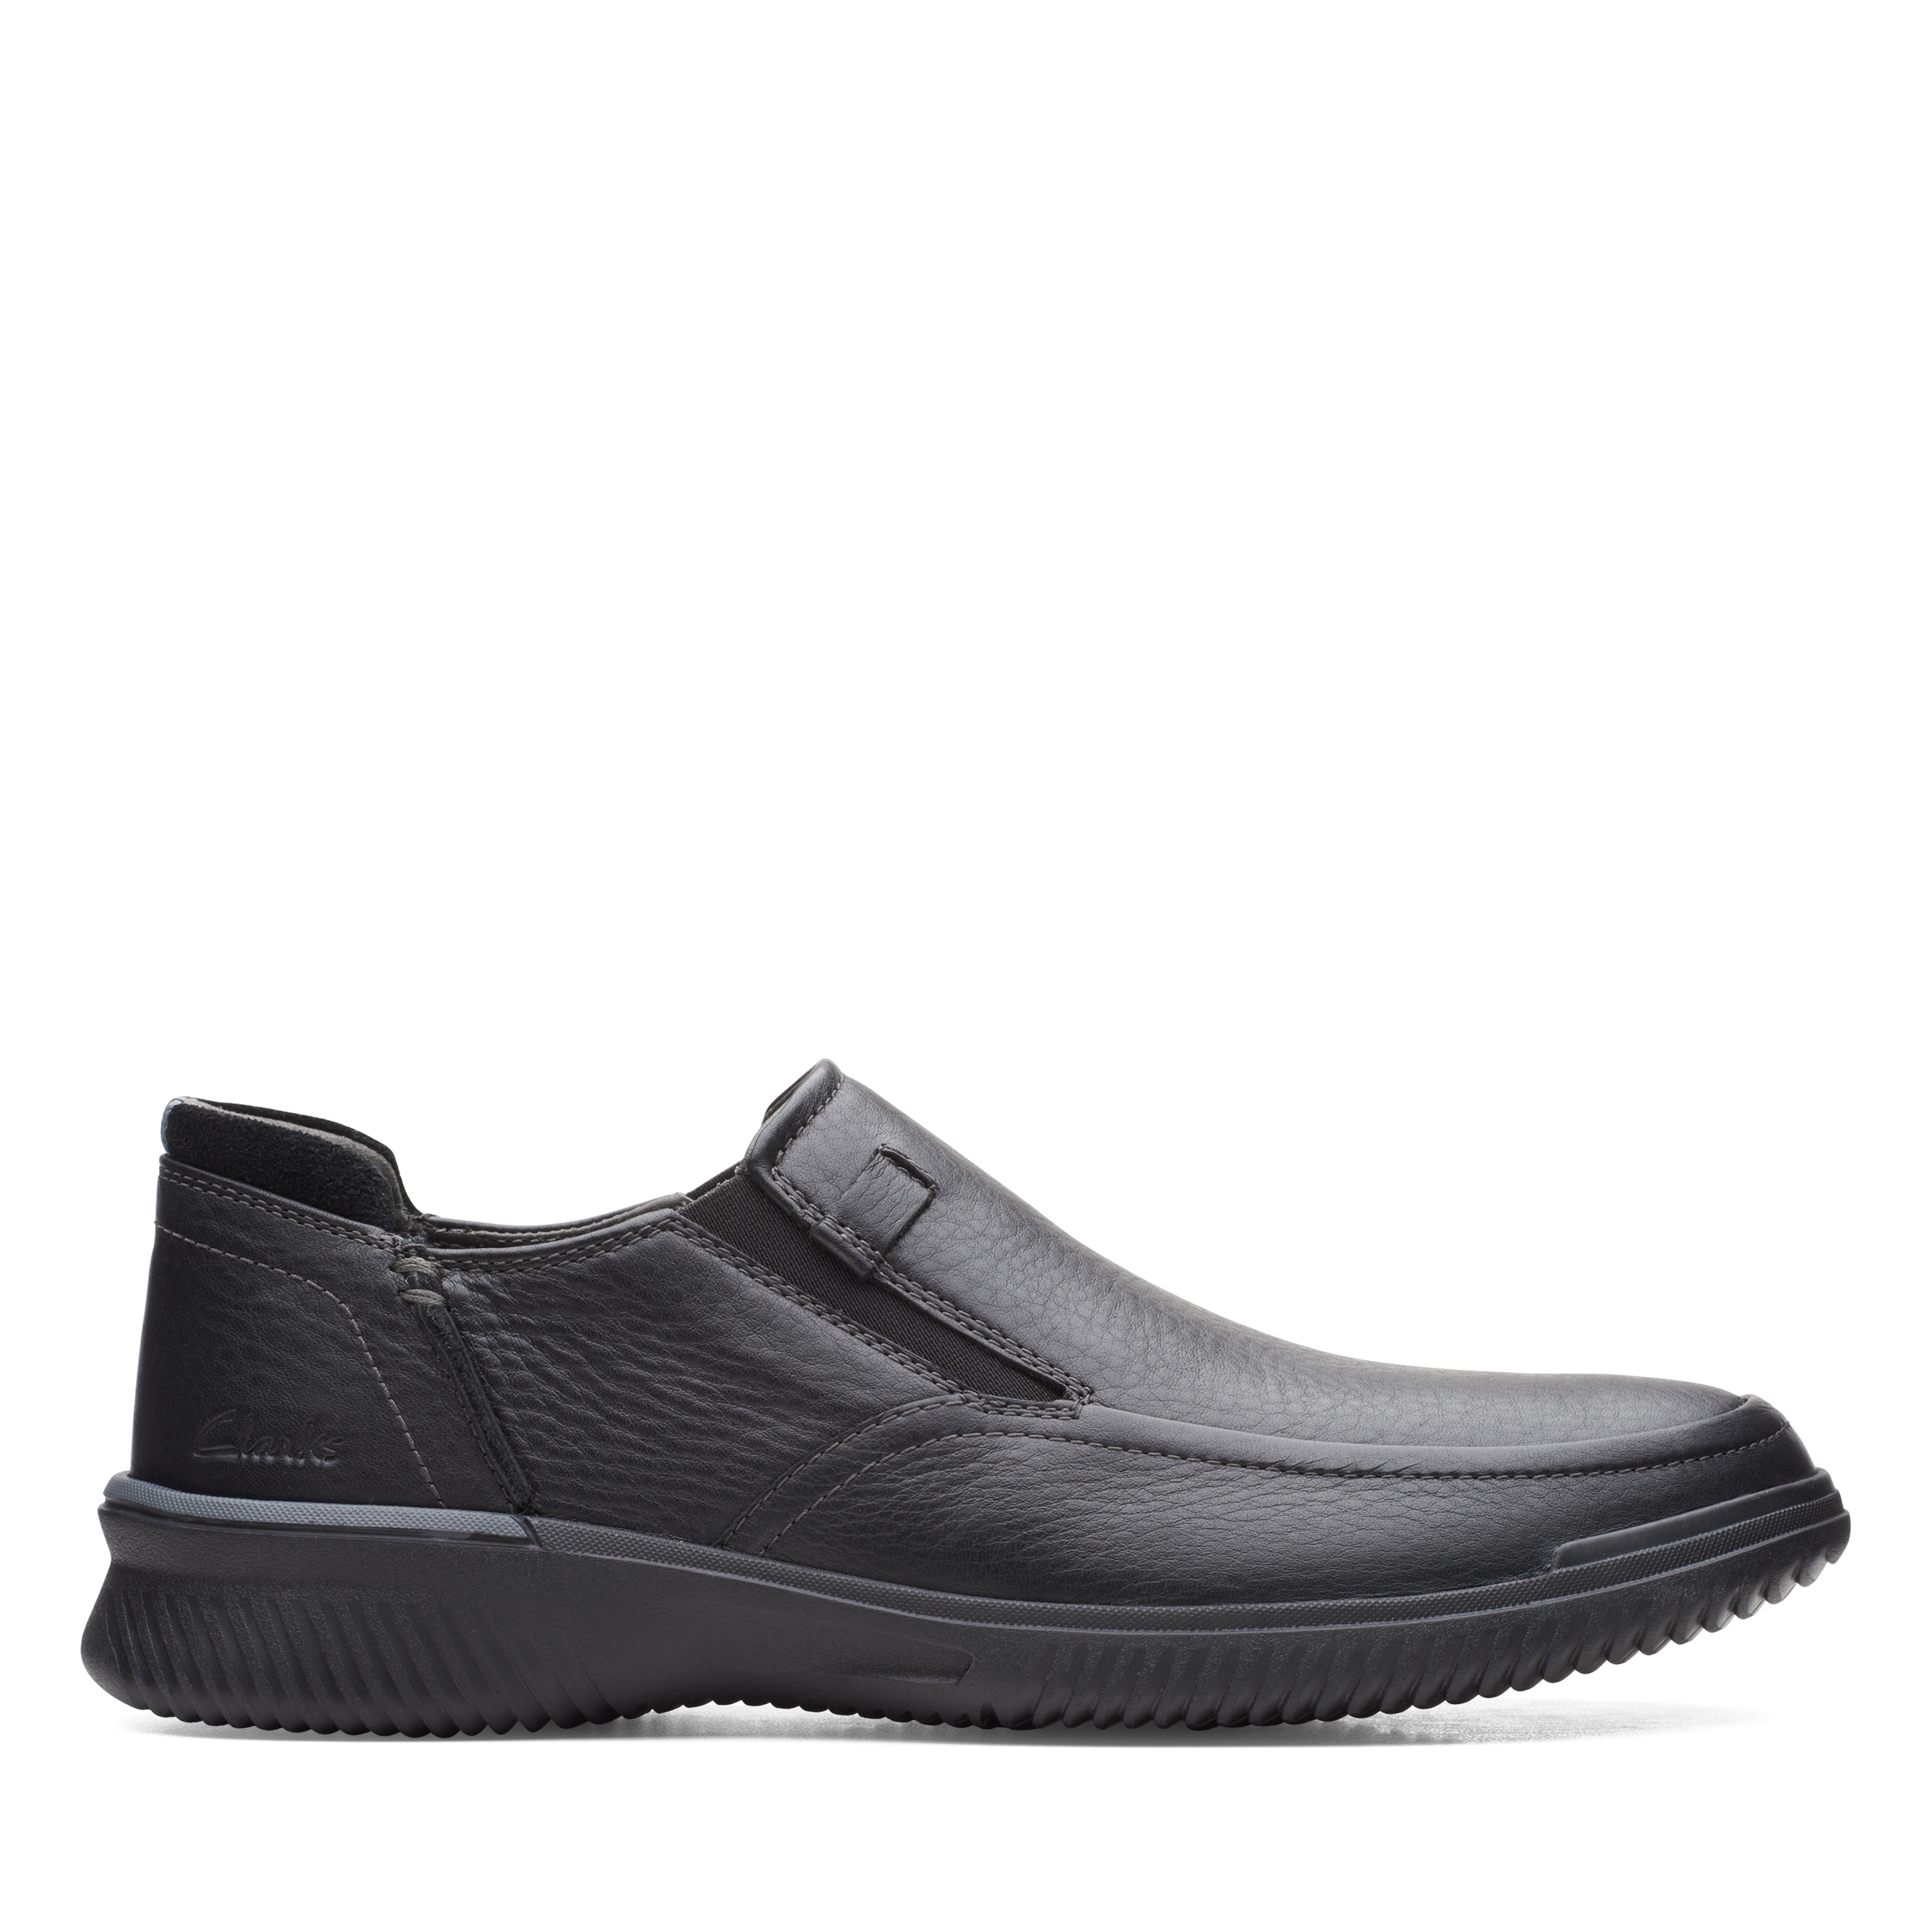 Clarks – Casual Donaway Step ΑΝΔΡ.ΥΠΟΔΗΜΑ